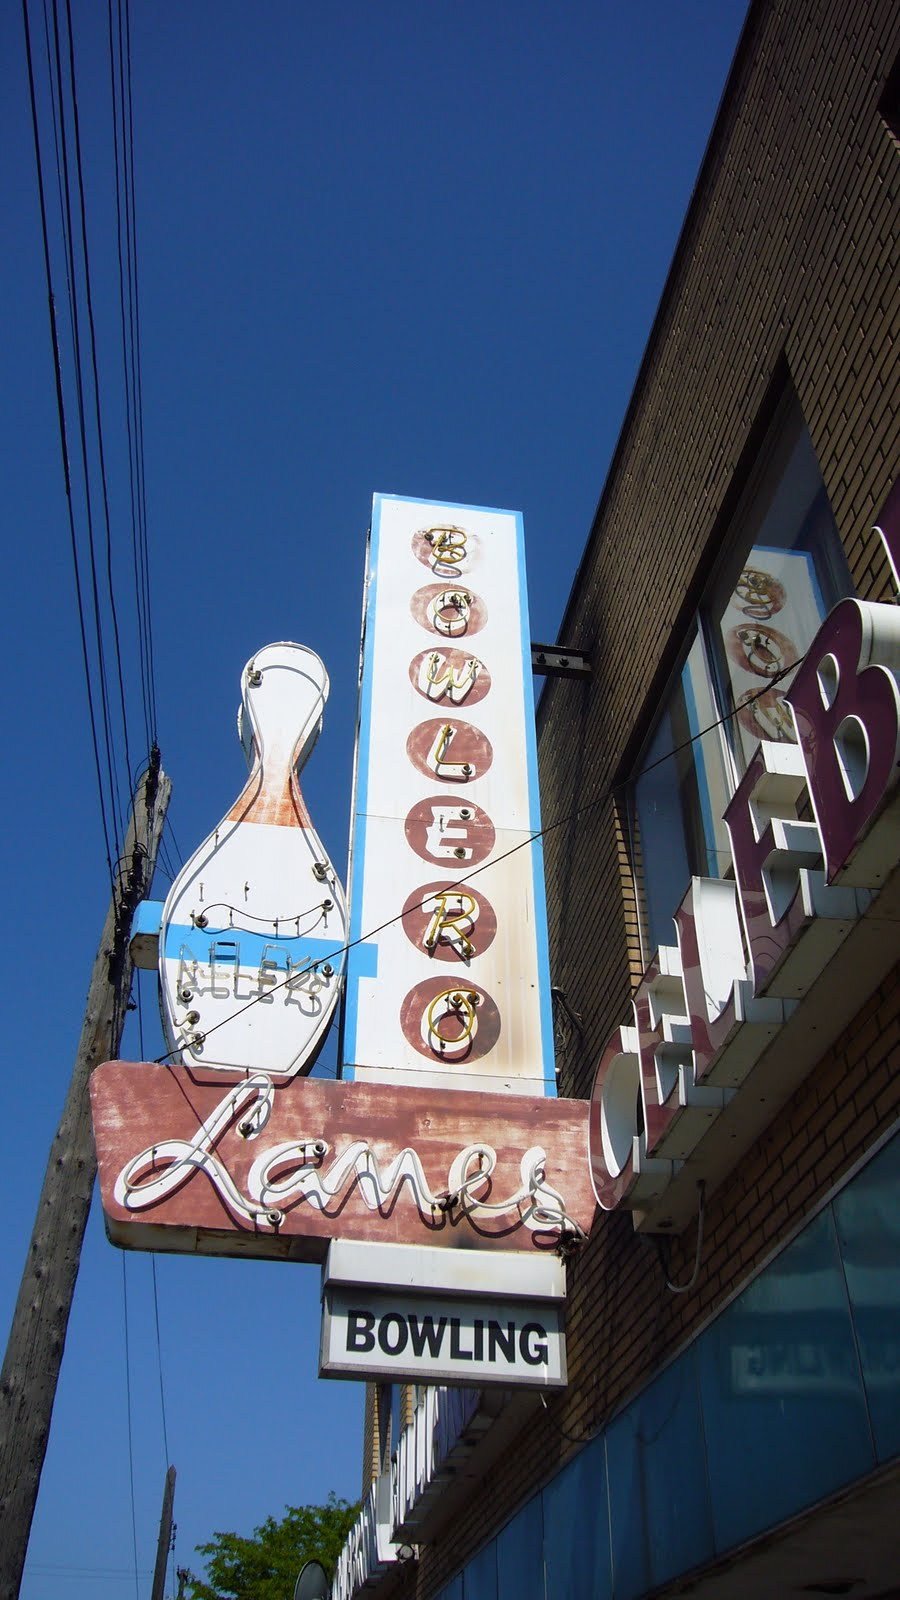 Lost Toronto Vintage Hamilton Signs. Nanny Service Las Vegas Miller Funeral Service. Student Loan New Brunswick Are Apples Acidic. Ekg Technician Program Liberty Center Schools. Family Court Palm Beach County. Fuel Cards For Owner Operators. Advertising Agency Database Ac Home Repair. Boston Cadillac Dealers Italian For Thank You. Court Reporter Certification Semi Pro Dslr